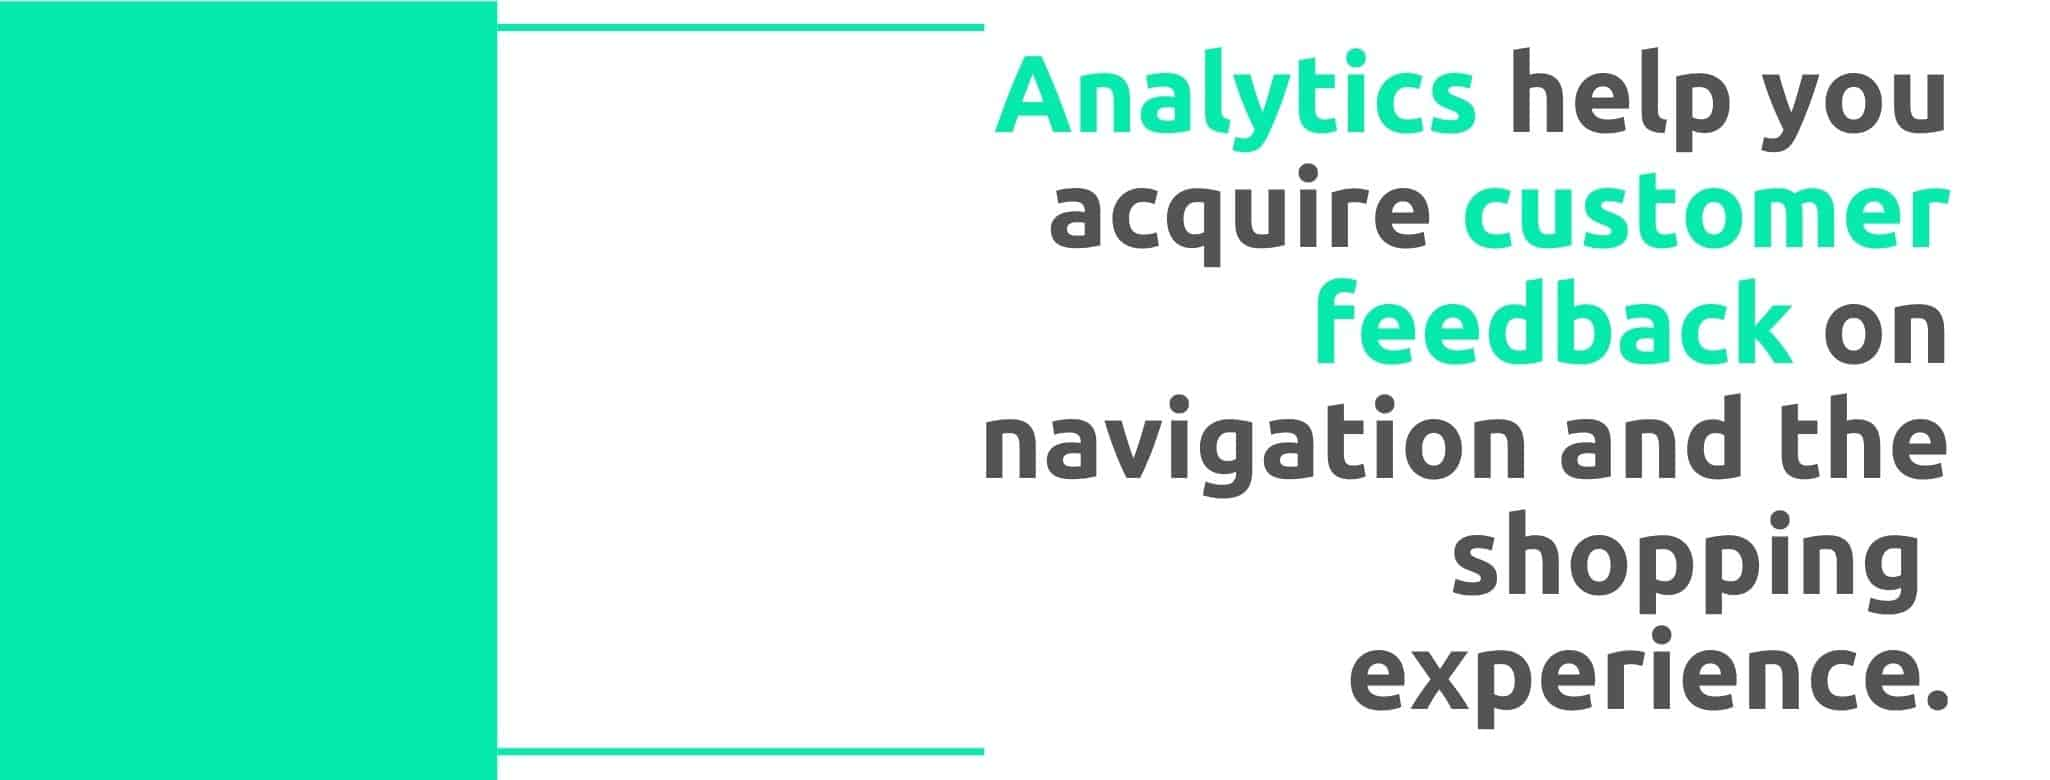 Analytics help you acquire customer feedback on navigation and the shopping experience - 22 Ways to Collect Customer Feedback - Replyco